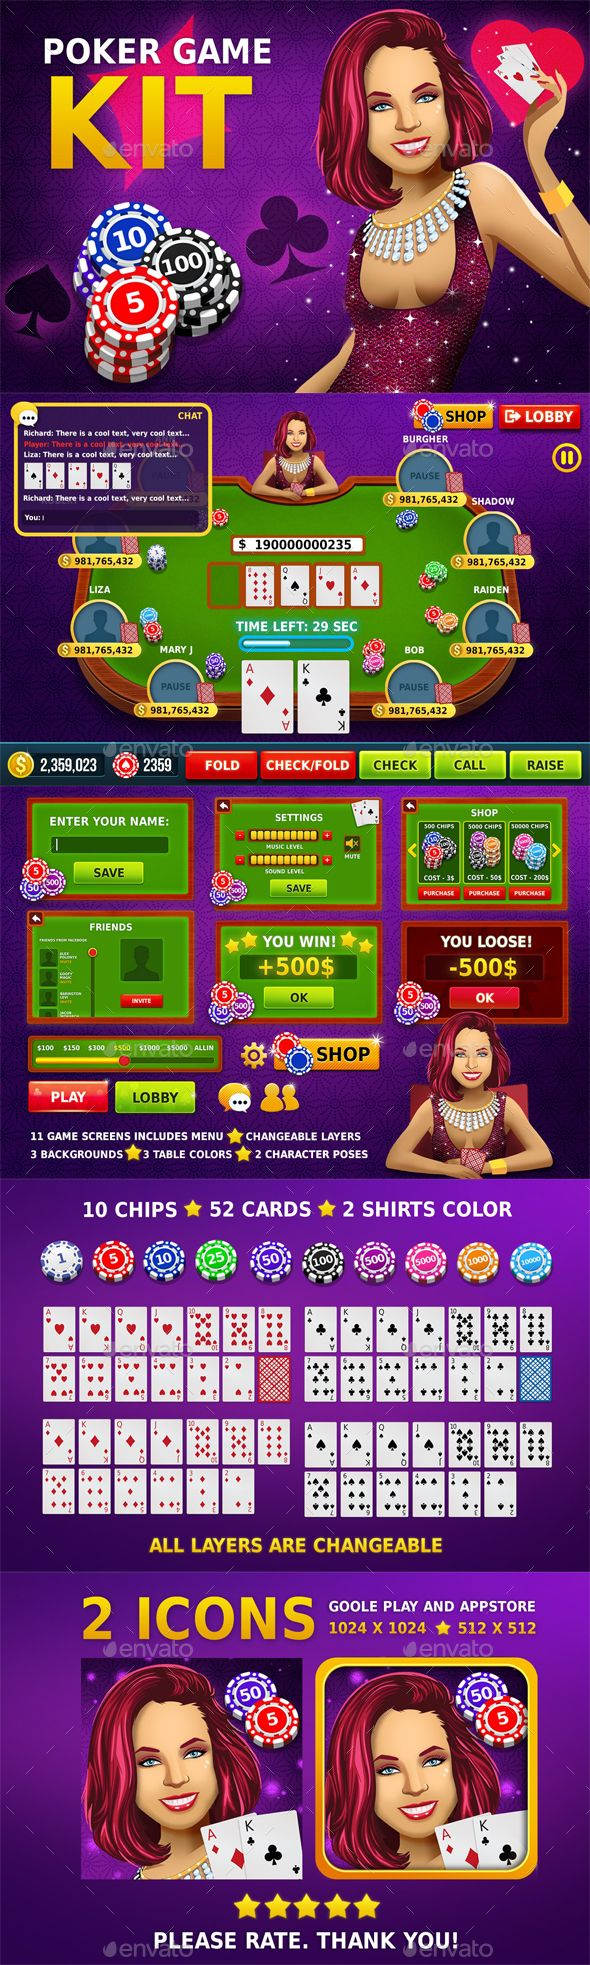 Poker Game Assets - Game Kits #Game Assets